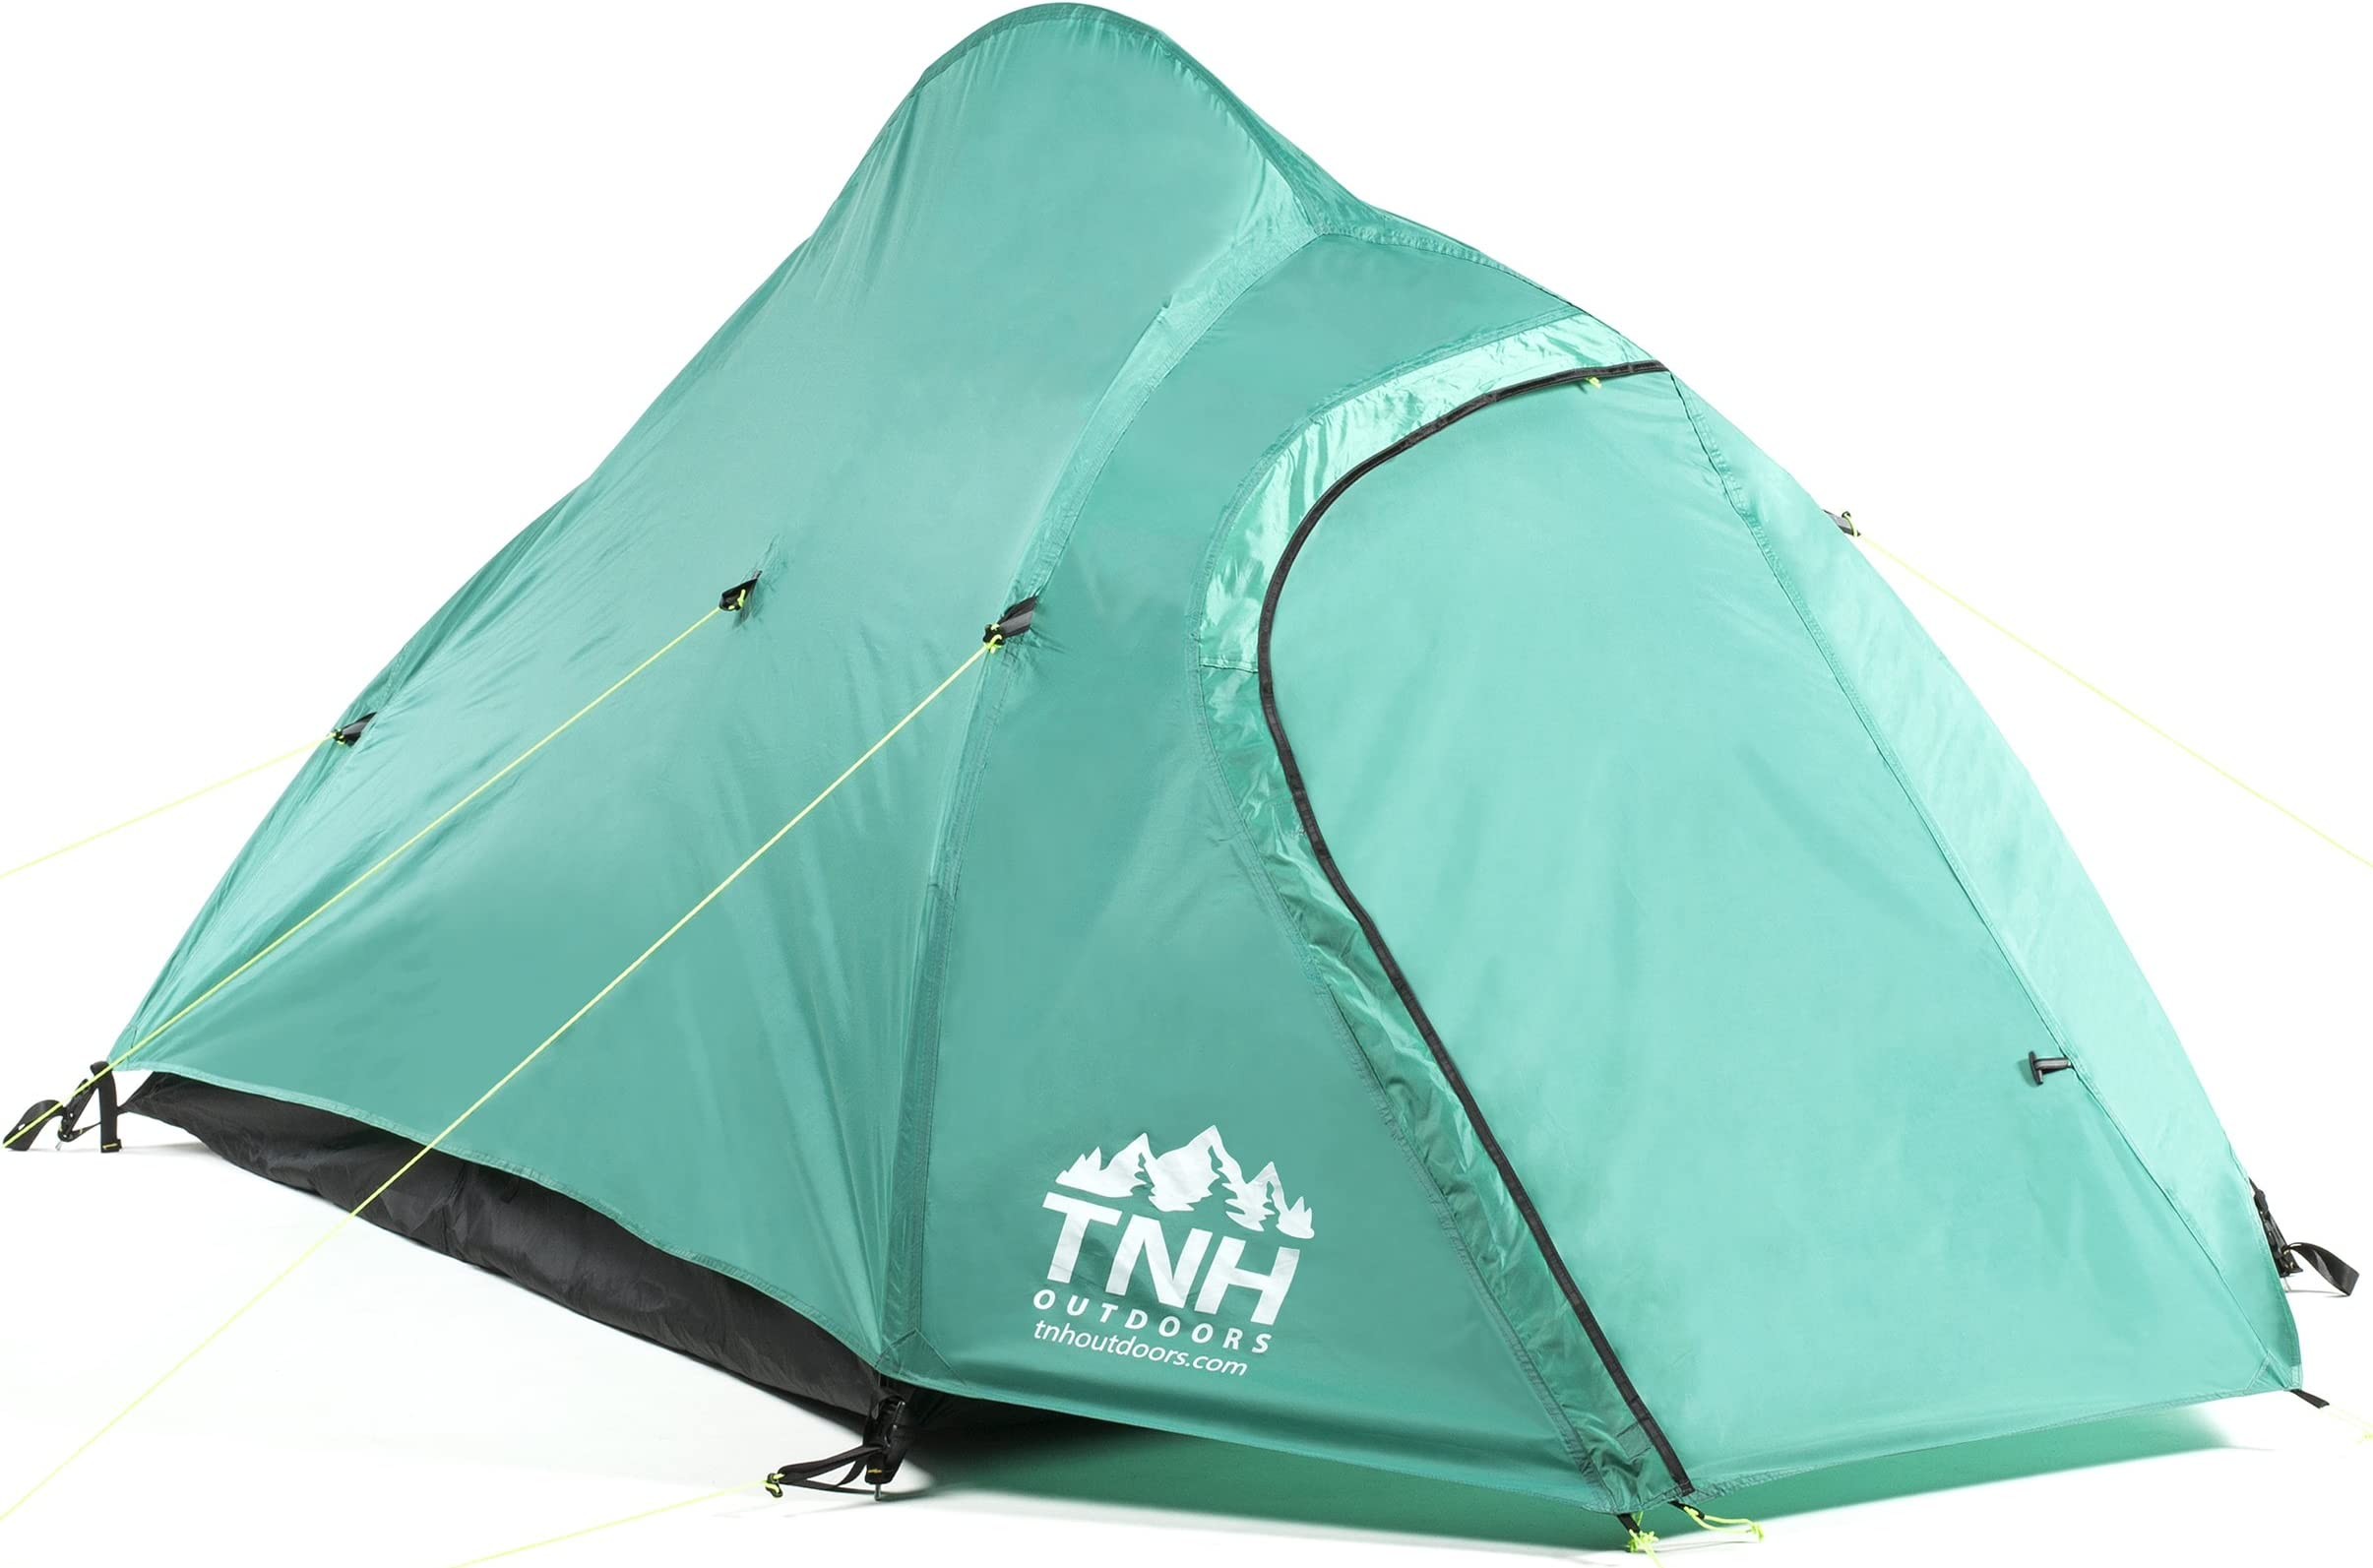 TNH ...  sc 1 st  Amazon.com & Backpacking Tents | Amazon.com